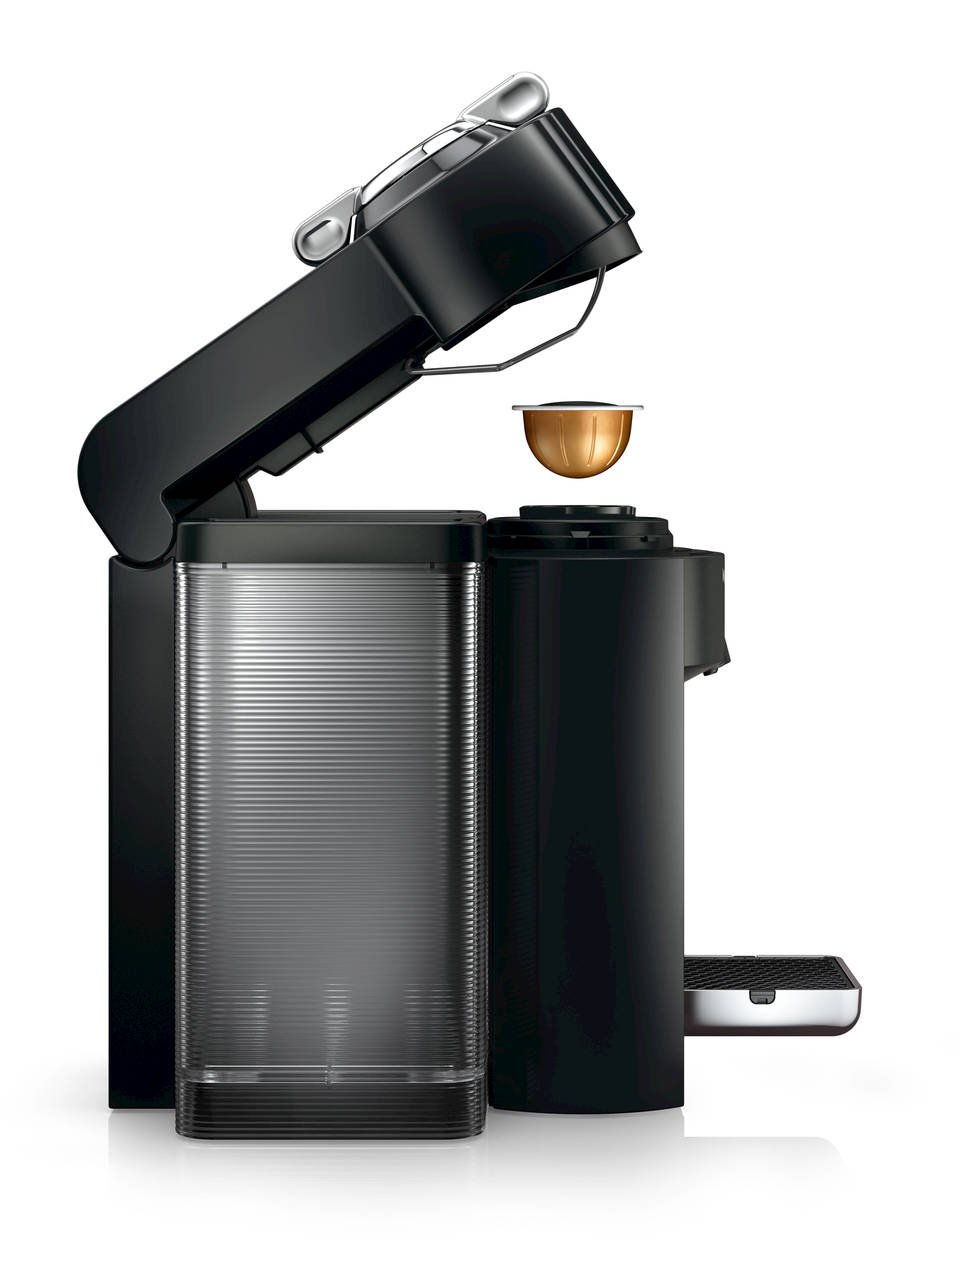 Nespresso A+GCC1-US-BK-NE VertuoLine Evoluo Deluxe Coffee & Espresso Maker with Aeroccino Plus Milk Frother, Black (Discontinued Model) by Nespresso (Image #6)